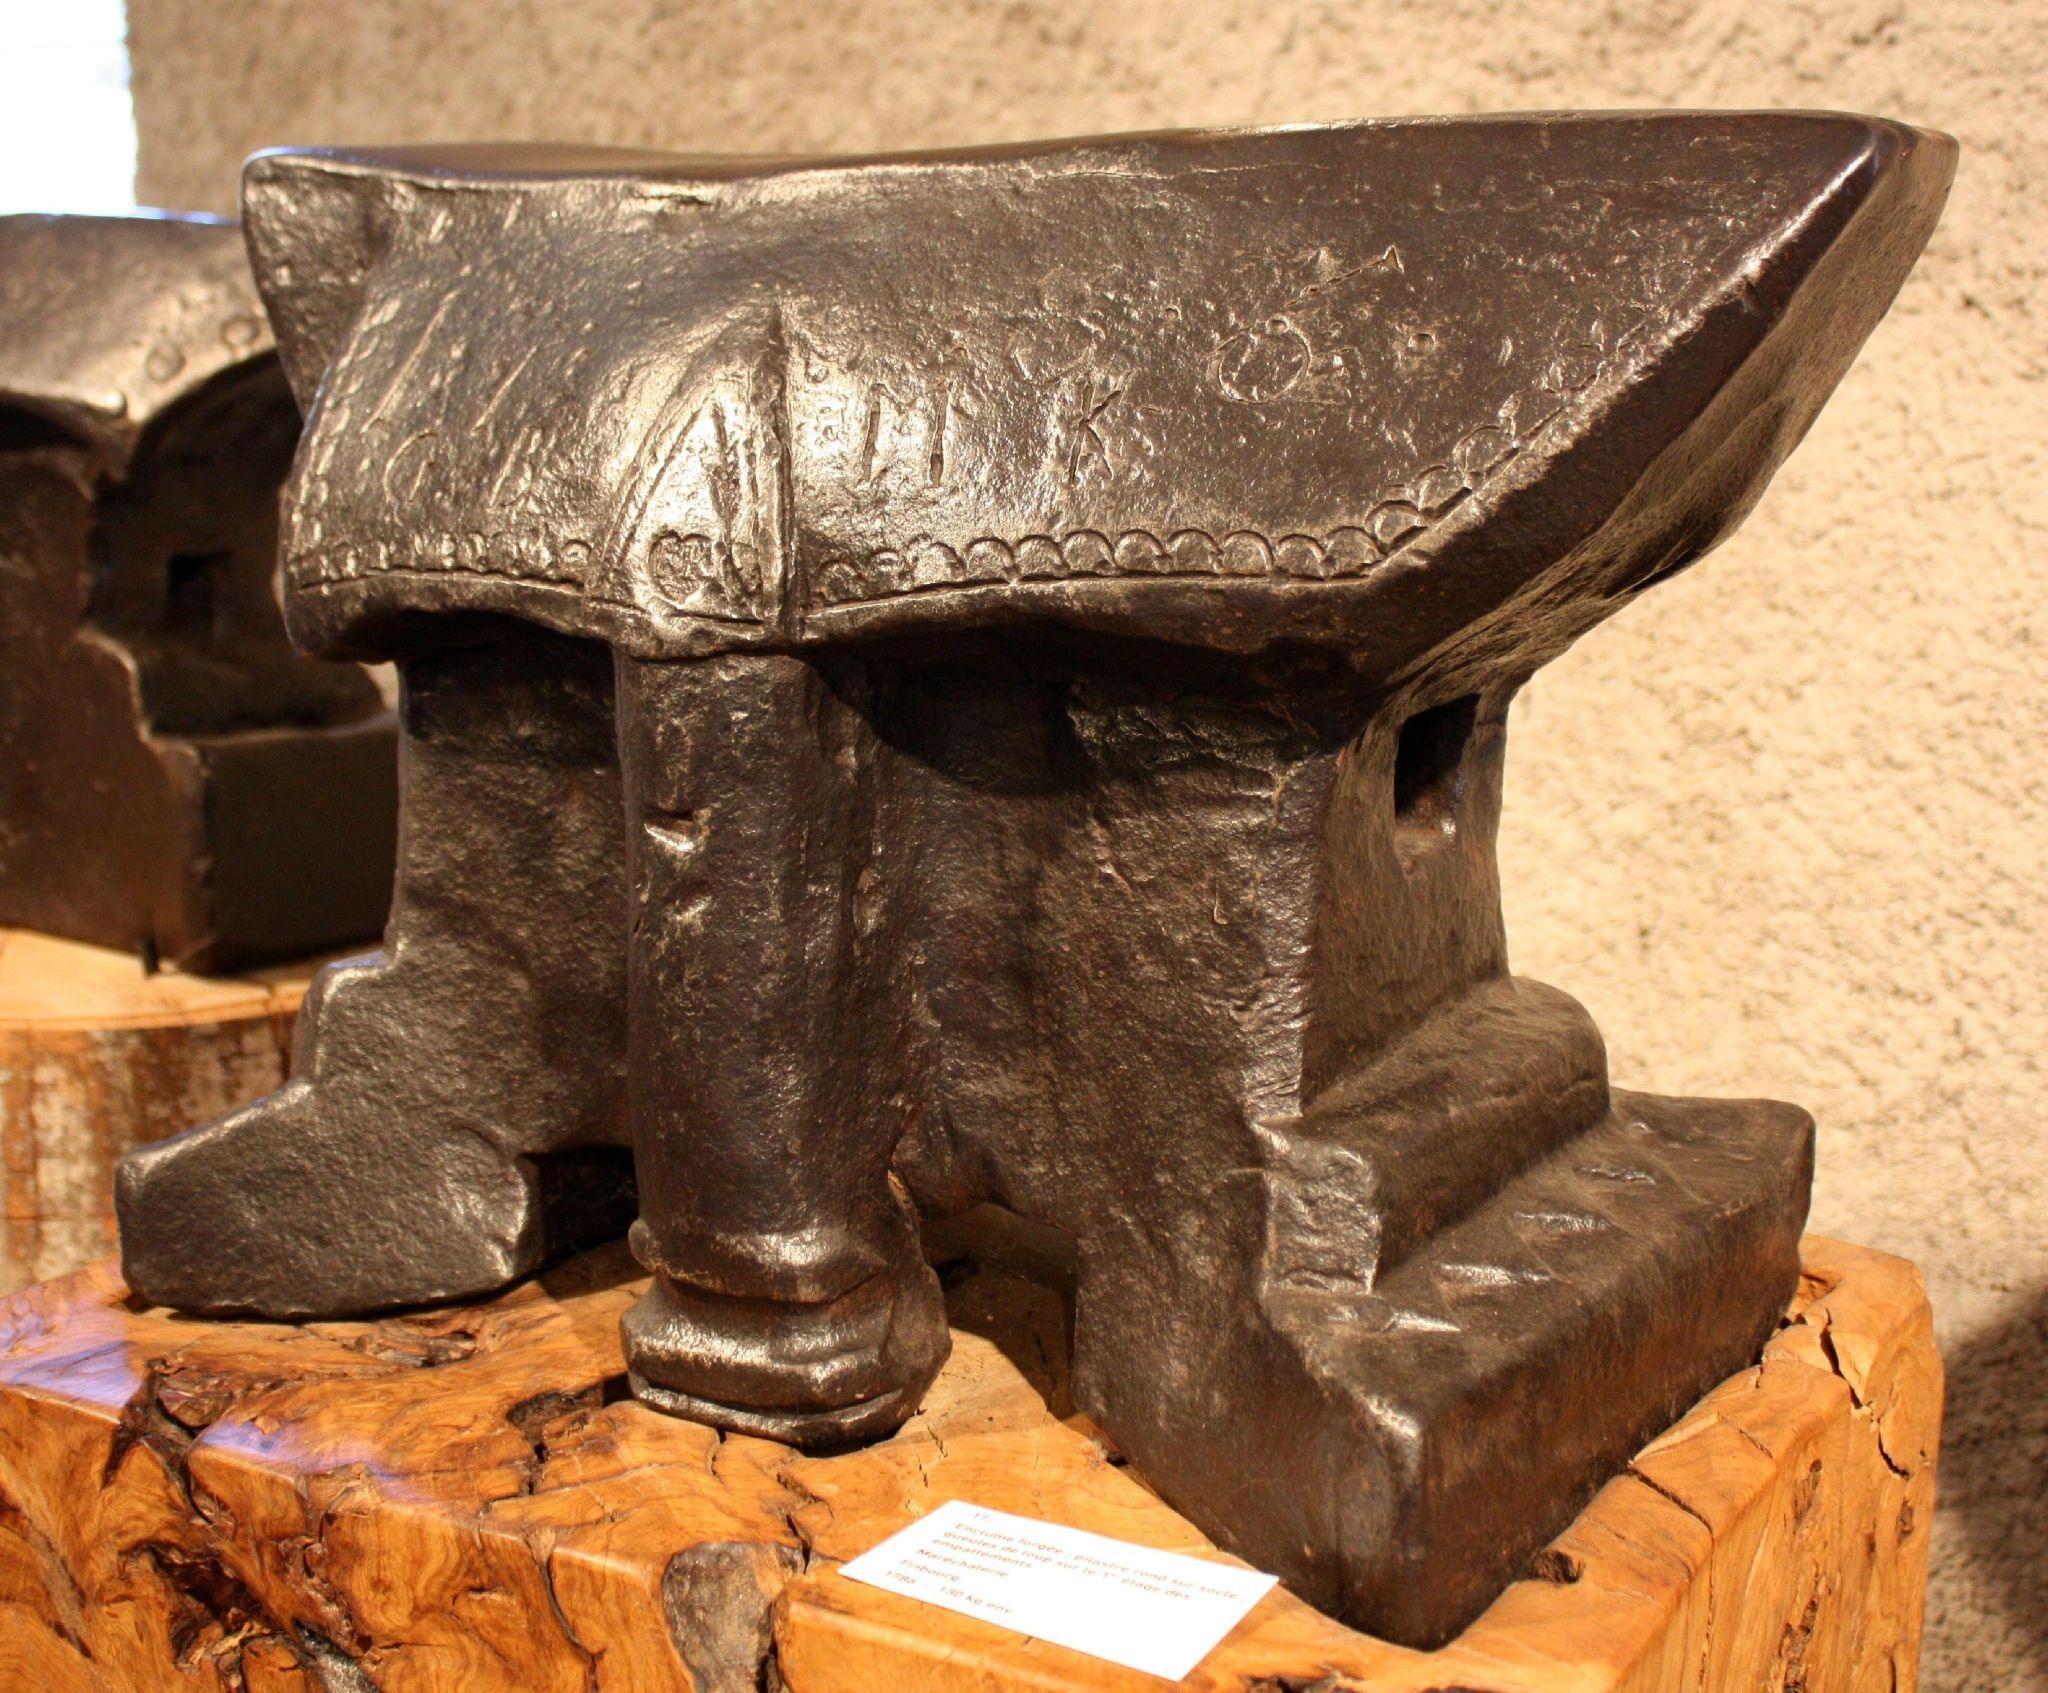 MDF17-06 1786 Farrier's anvil, Fribourg region.  Forged with a round pillar on a pedestal.  Iron and Railway Museum, Vallorbe, 2012 expo. Wgt: ~130kg.